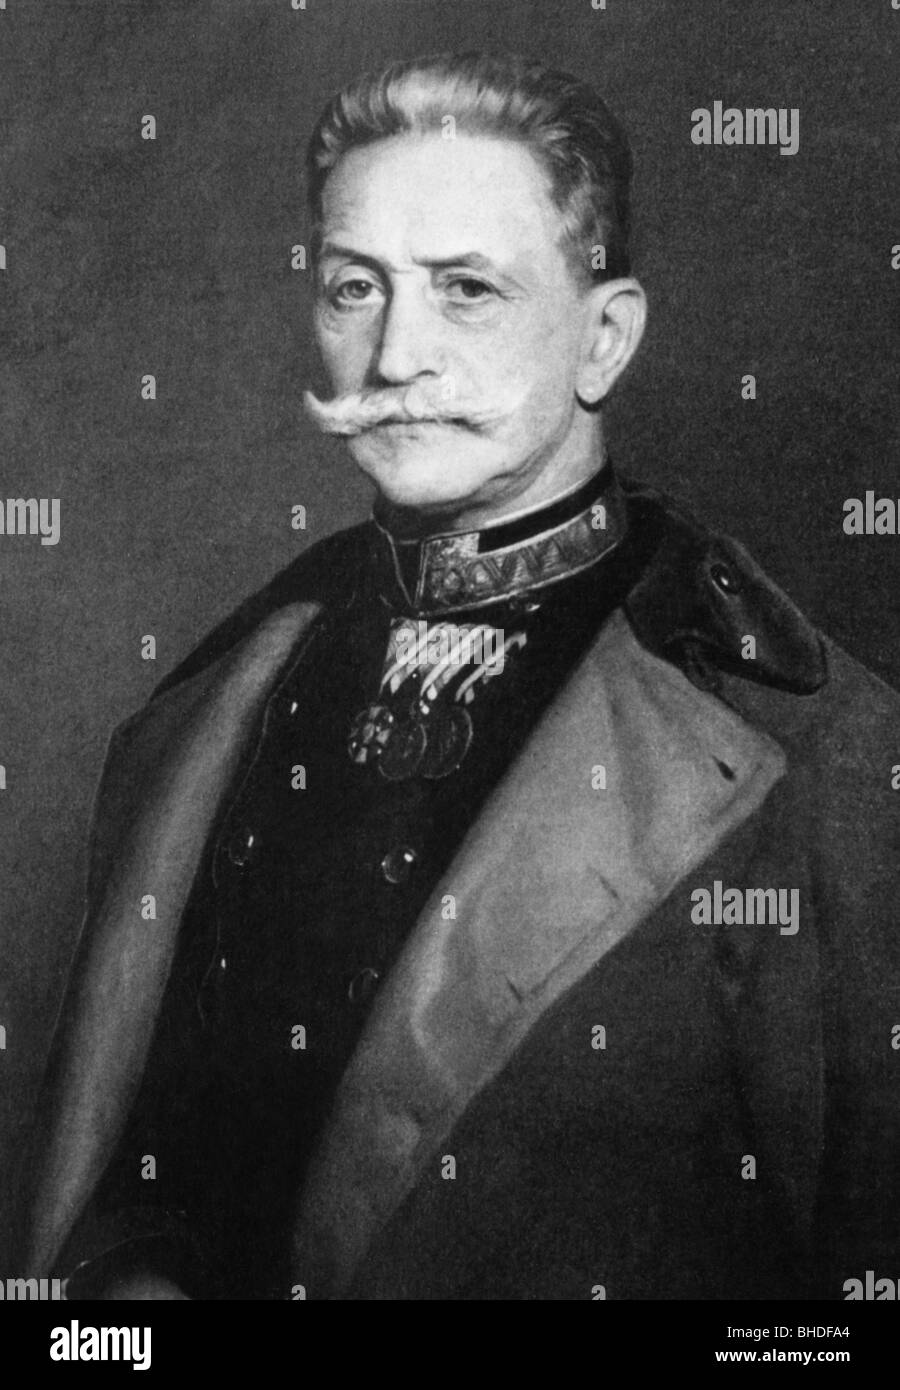 Conrad von Hoetzendorf, Count, 11.11.1852 - 25.8.1925, Austrian field marshal, chief of the general staff of the - Stock Image